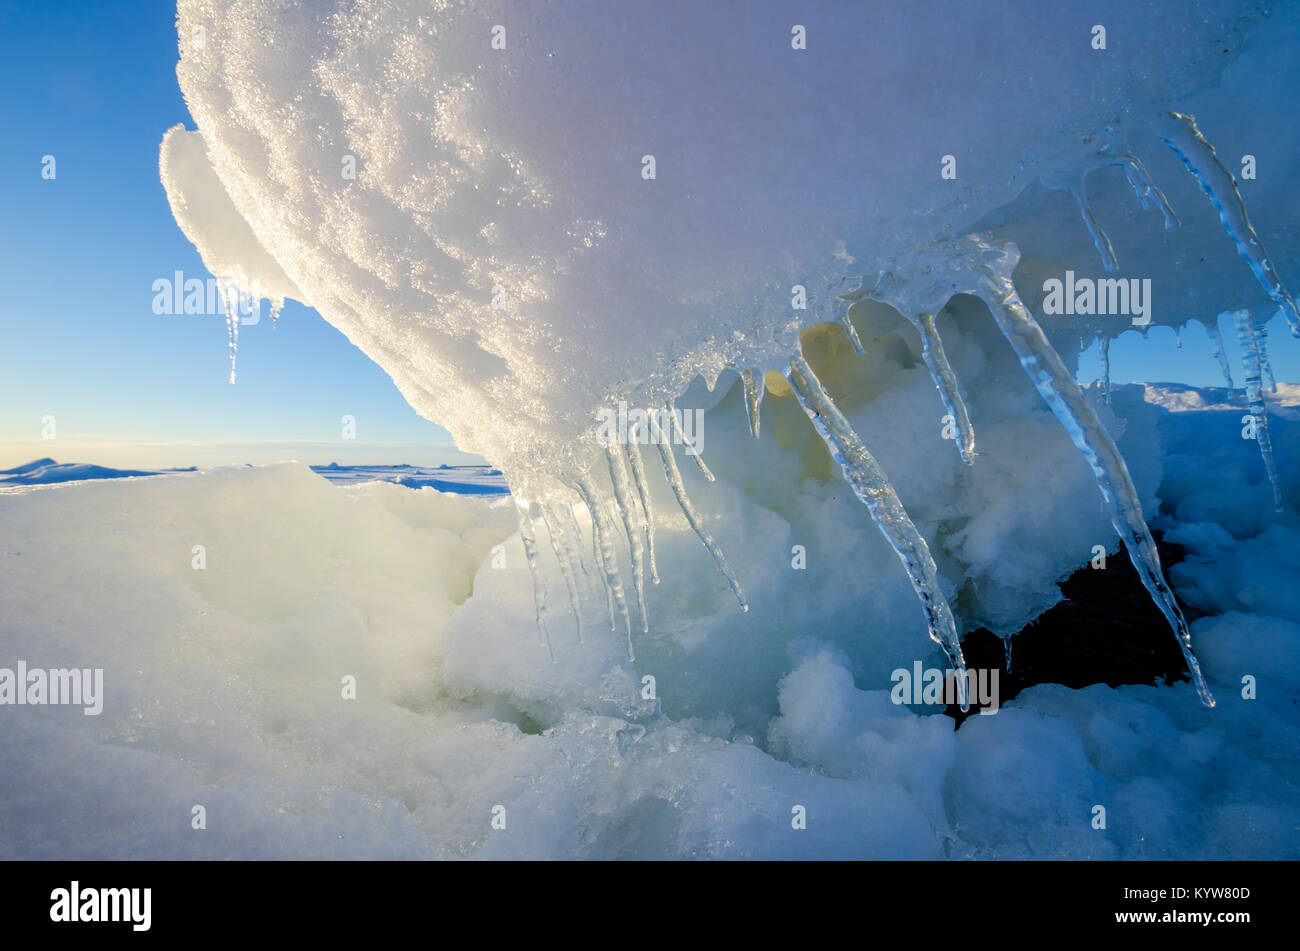 The ice floe on the shore of the White Sea - Stock Image